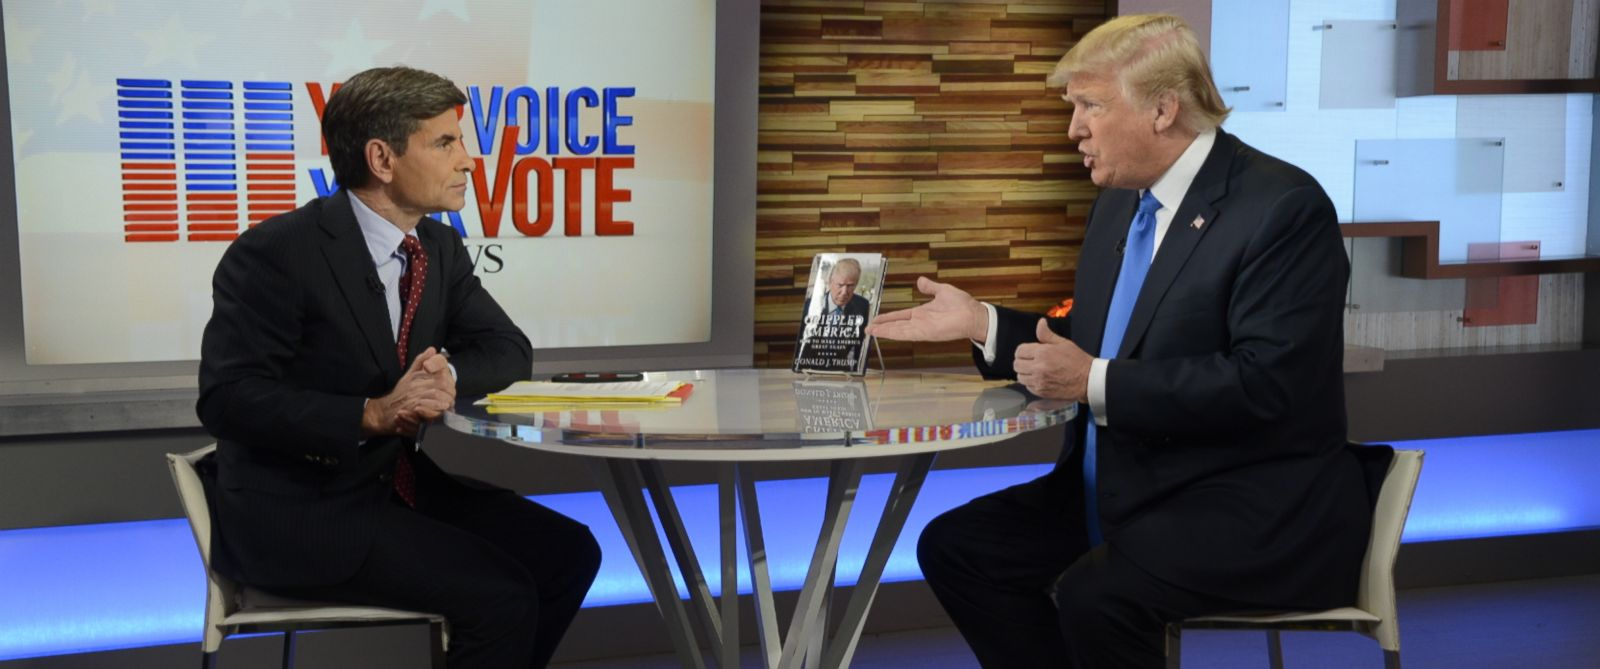 """PHOTO: Donald Trump speaks with George Stephanopoulos live on """"Good Morning America"""" in Times Square, New York, Nov. 3, 2015."""